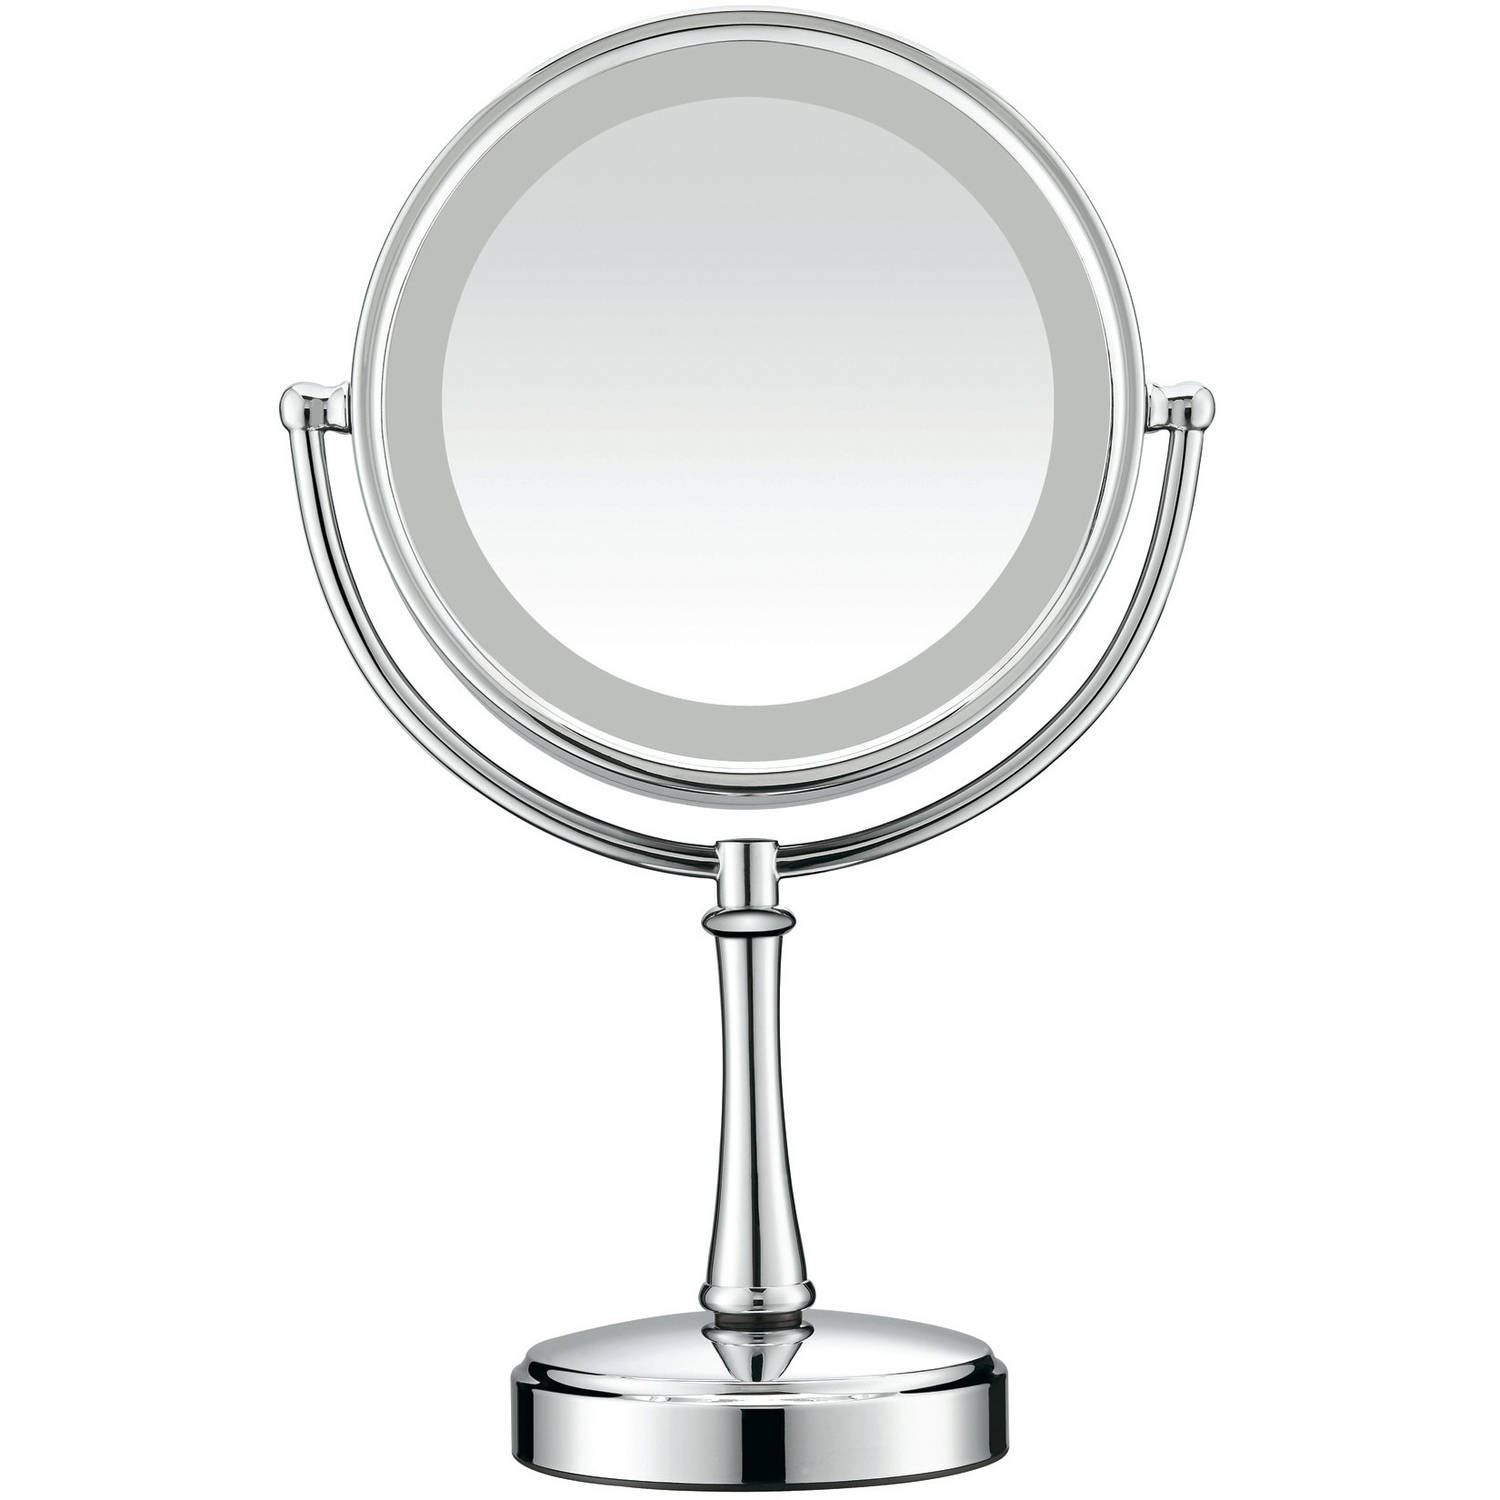 Best Lighted Makeup Mirror | Light Bulbs for Makeup | Hollywood Lighted Vanity Mirror